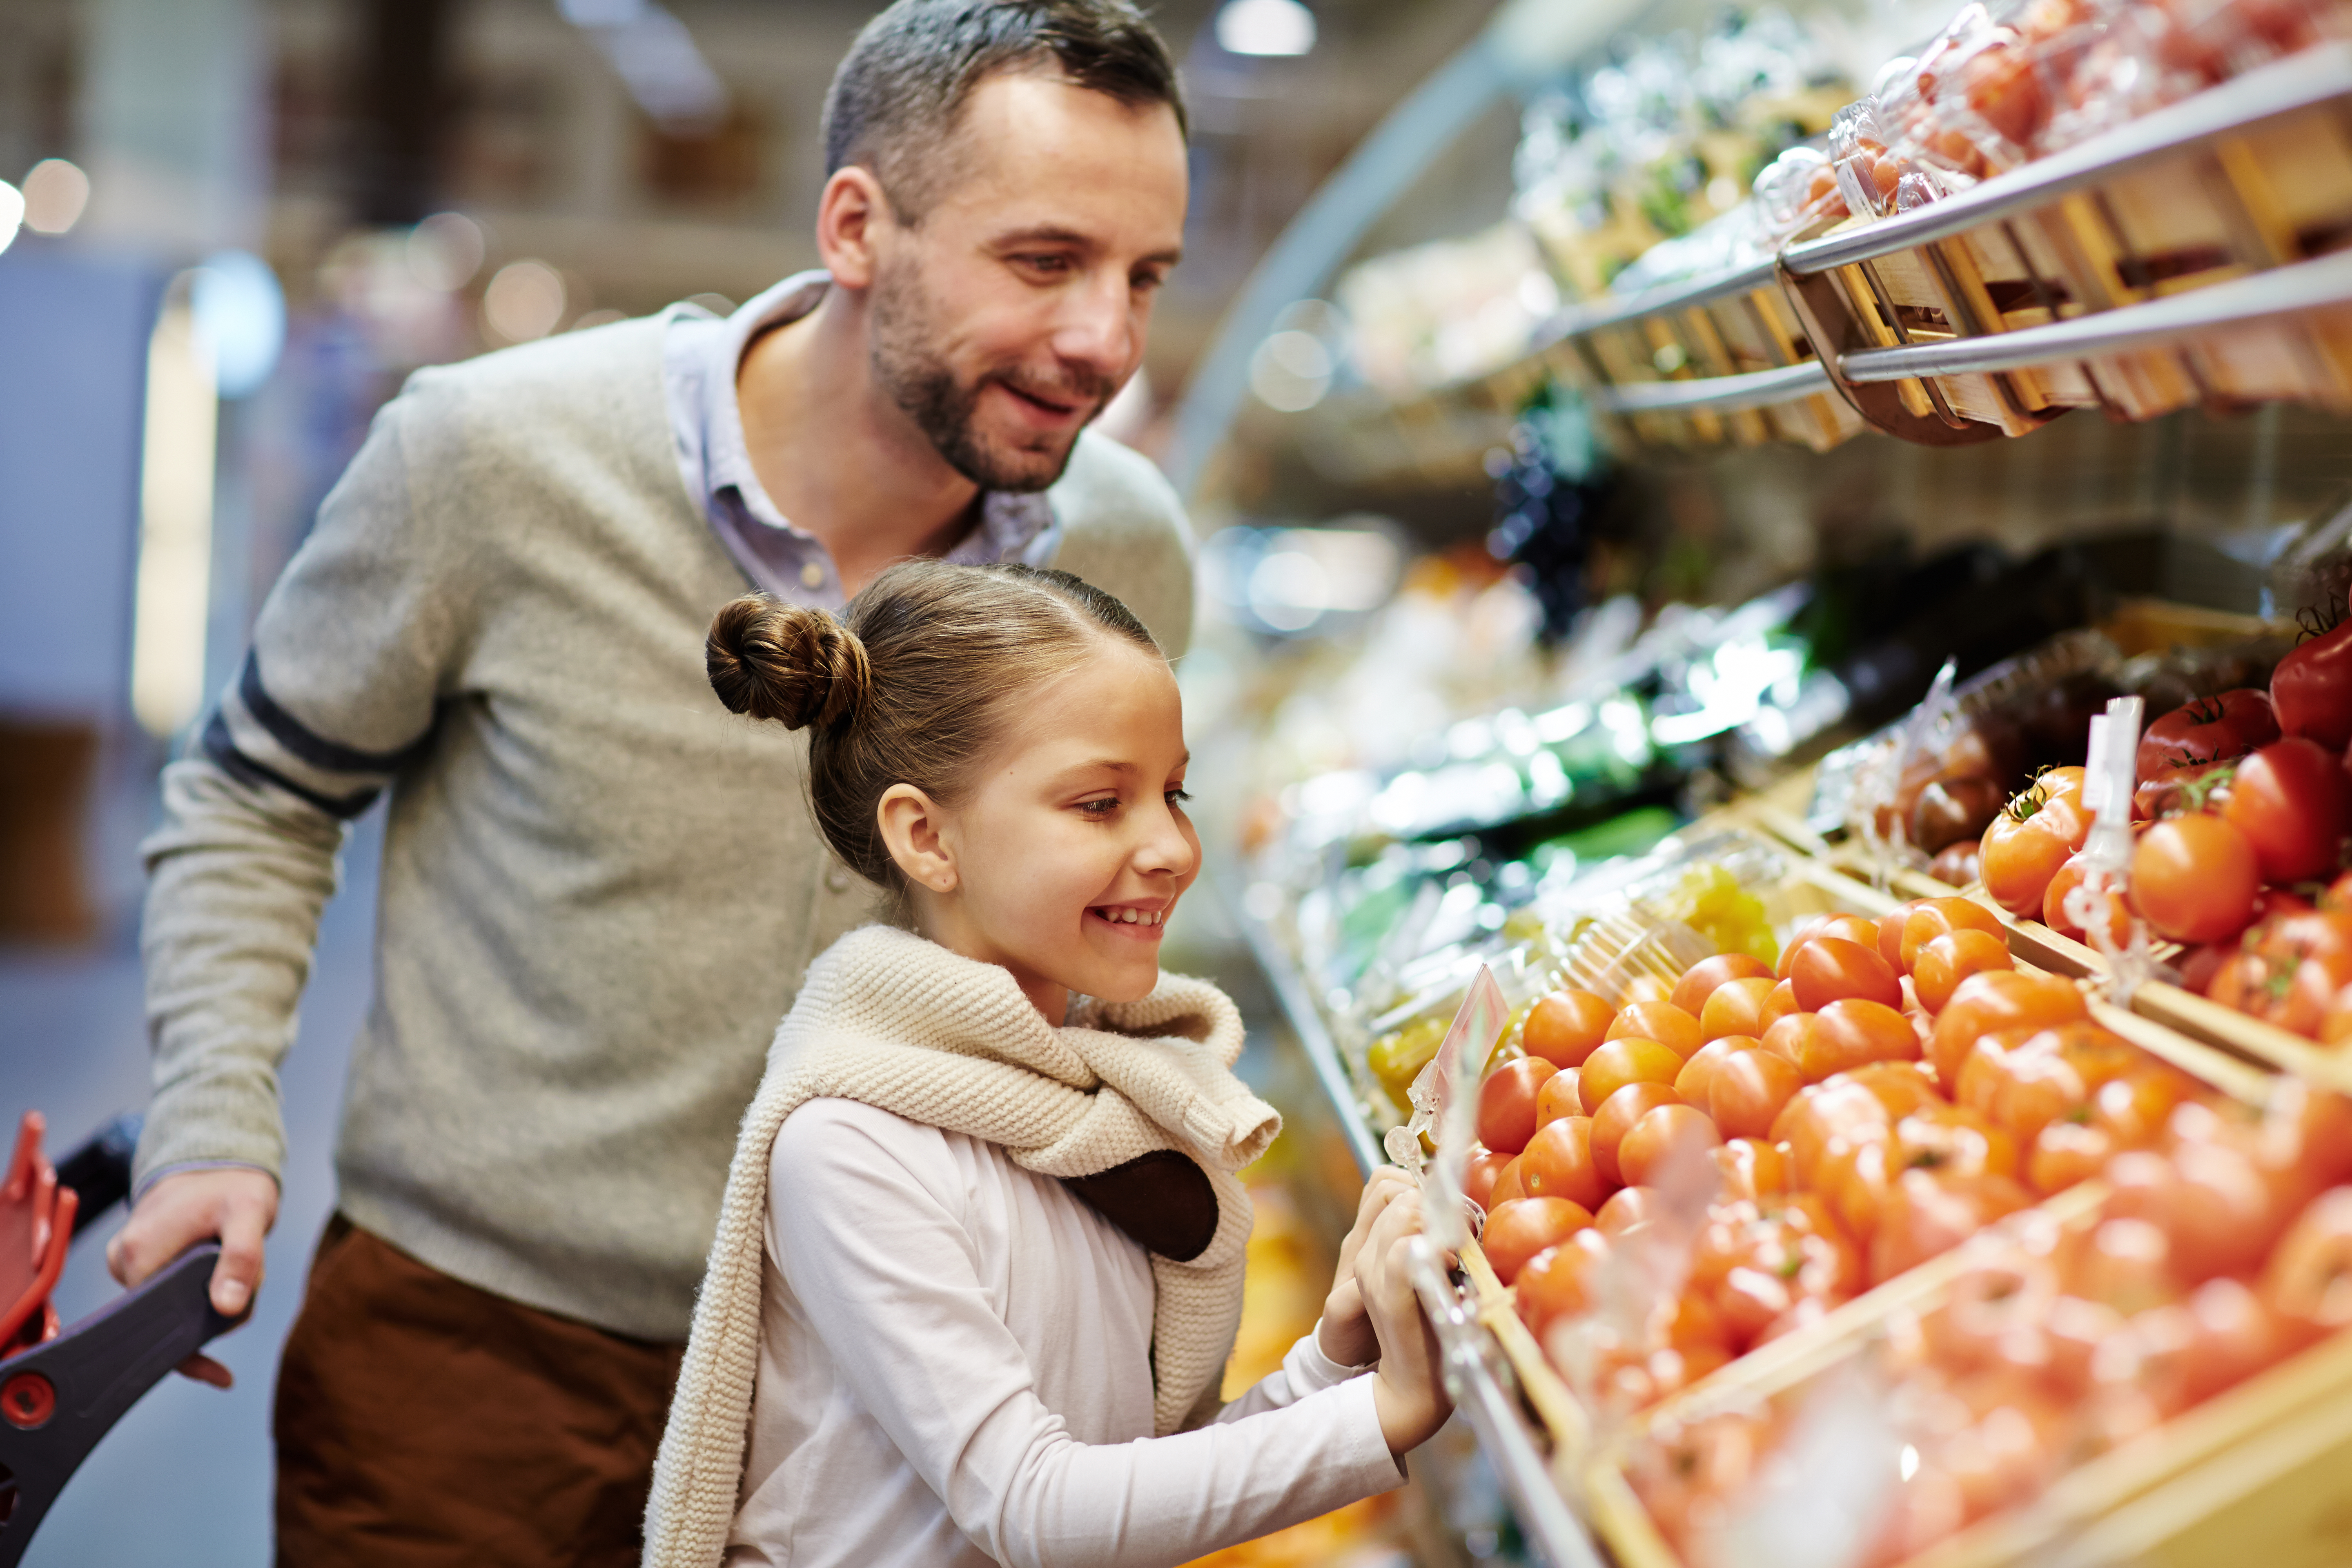 Portrait of cute little girl with dad leaning over vegetable counter choosing fresh ripe tomatoes and other vegetables at FNGs.